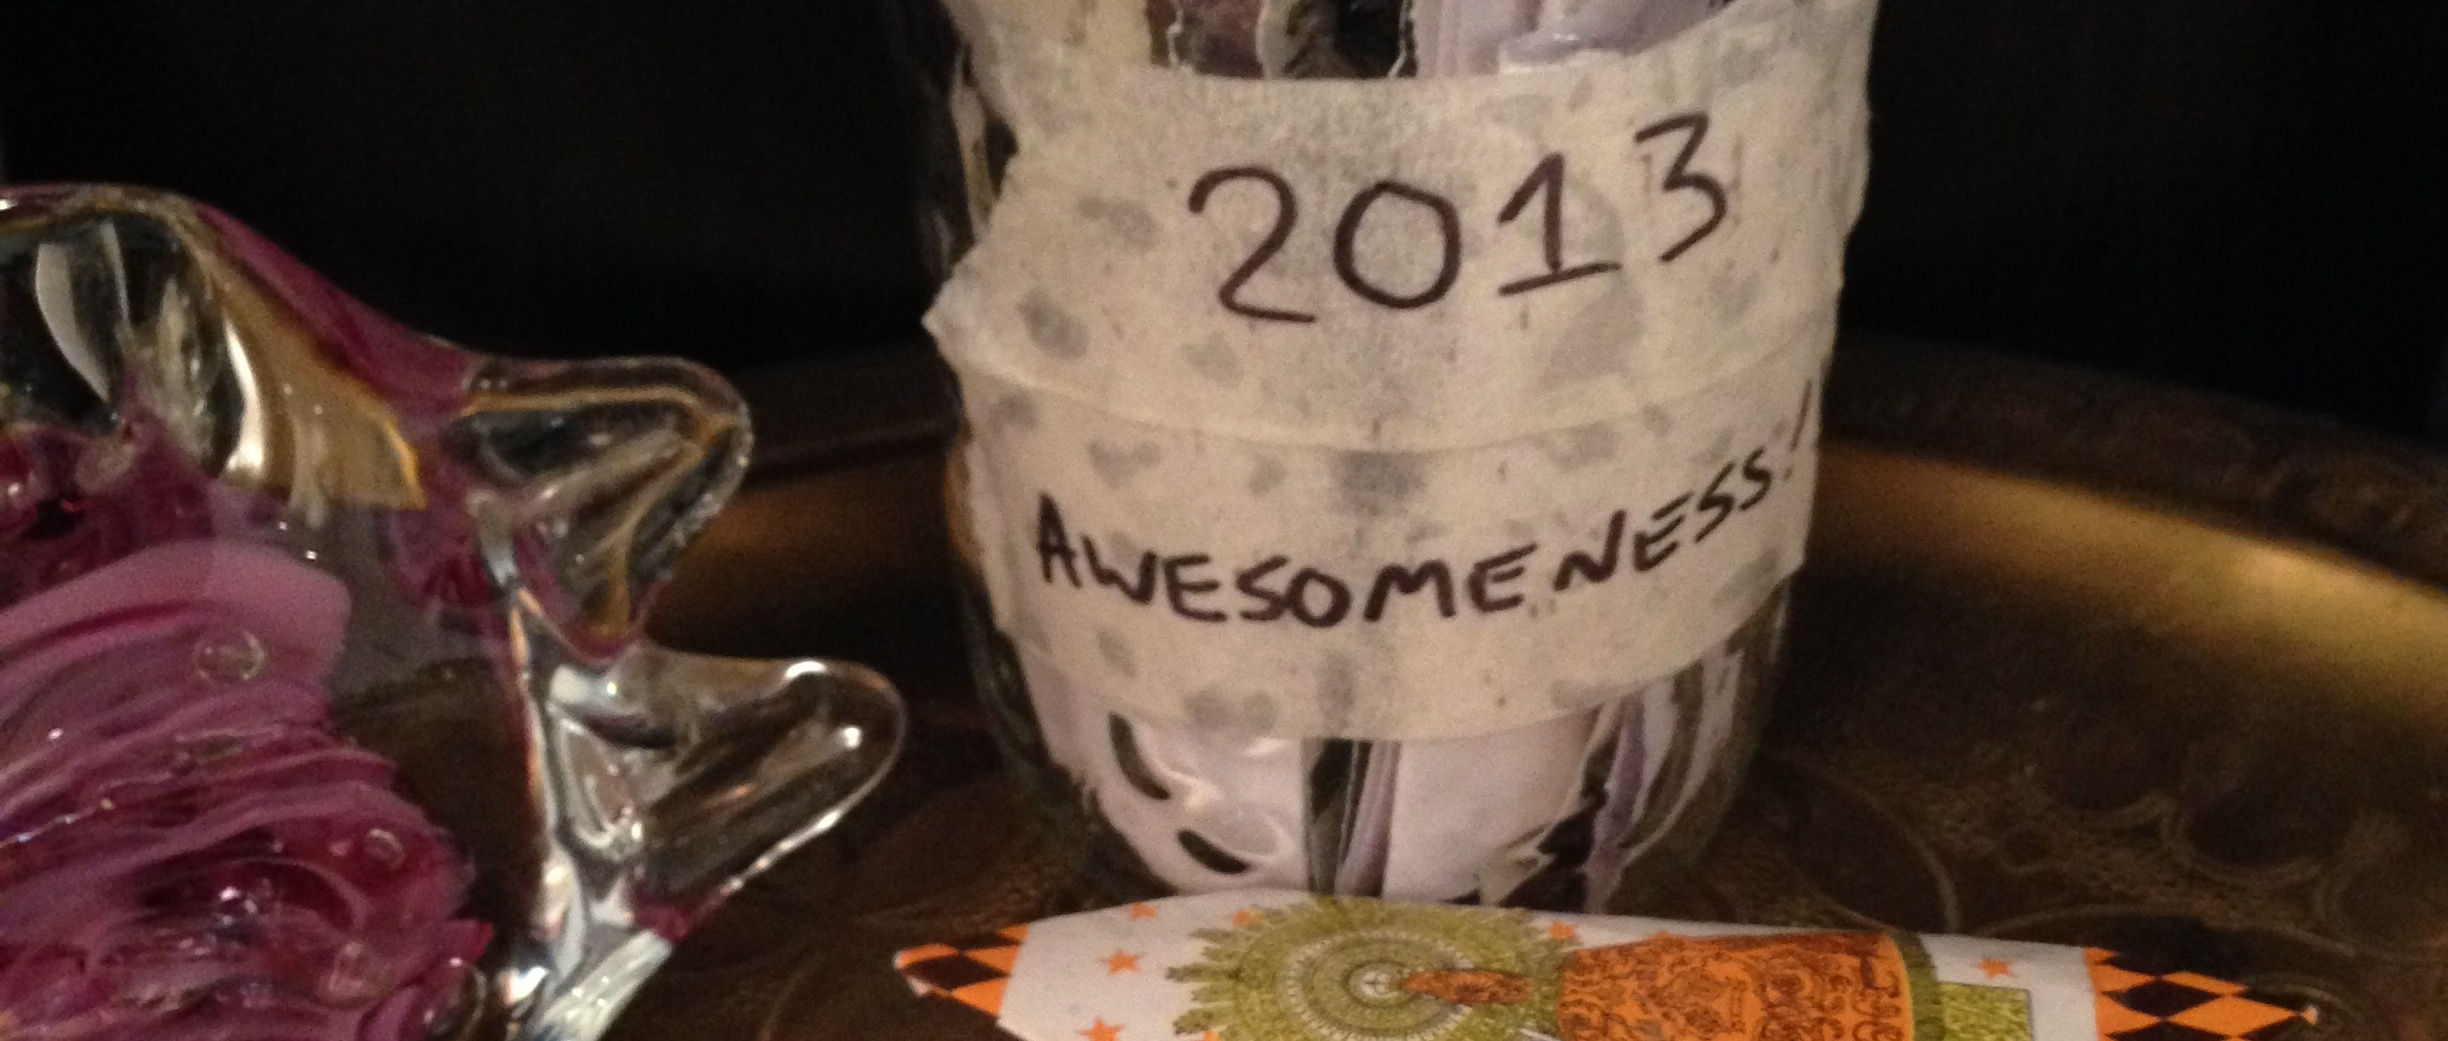 jar of awesomeness